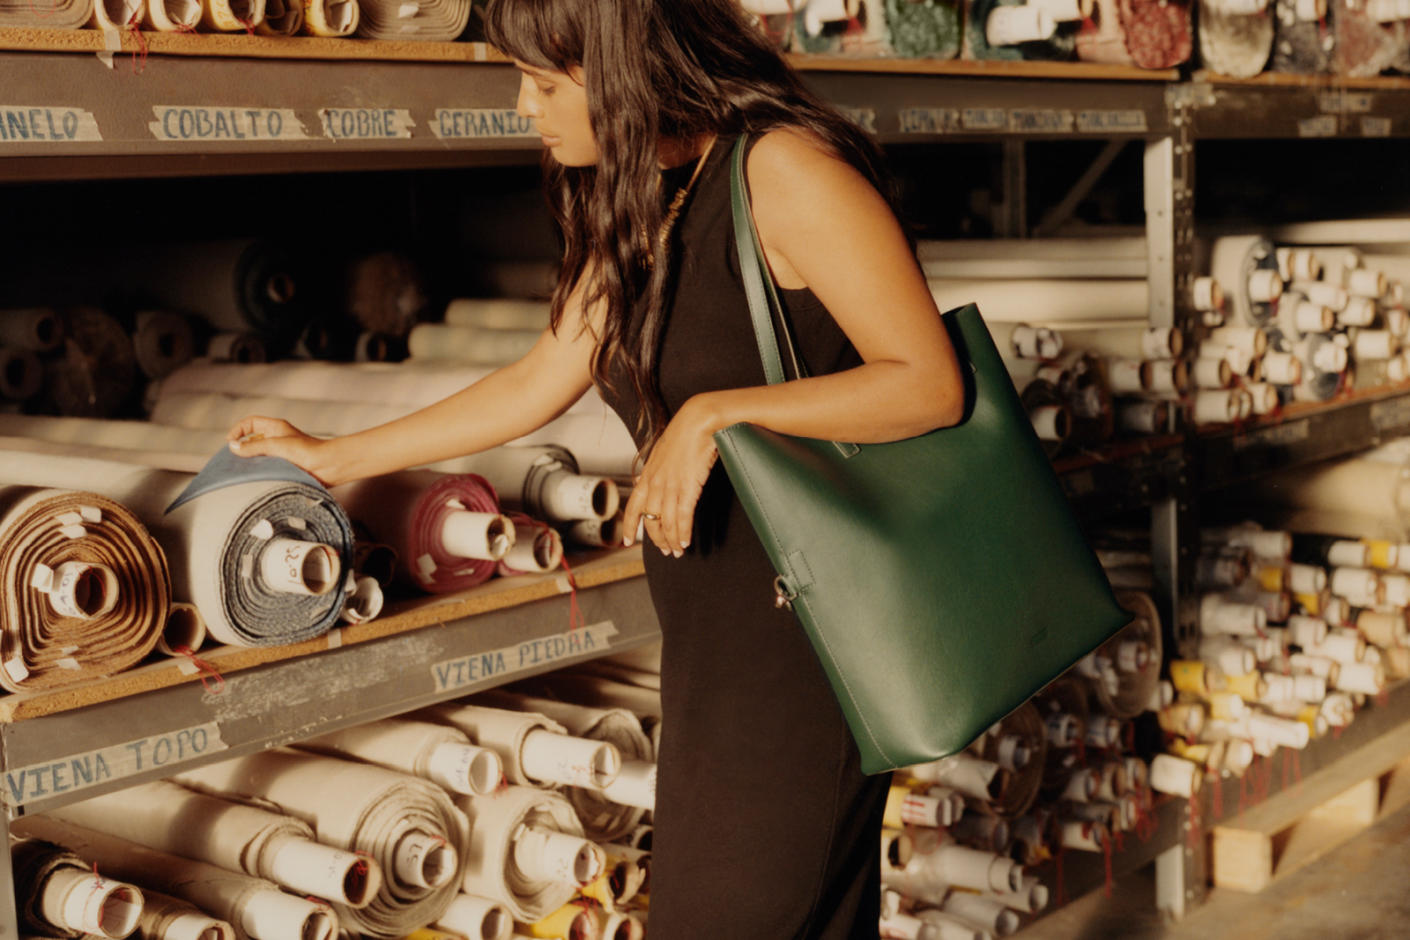 A woman in a black dress looking at some rolls of cloth with a green tote shoulder bag.